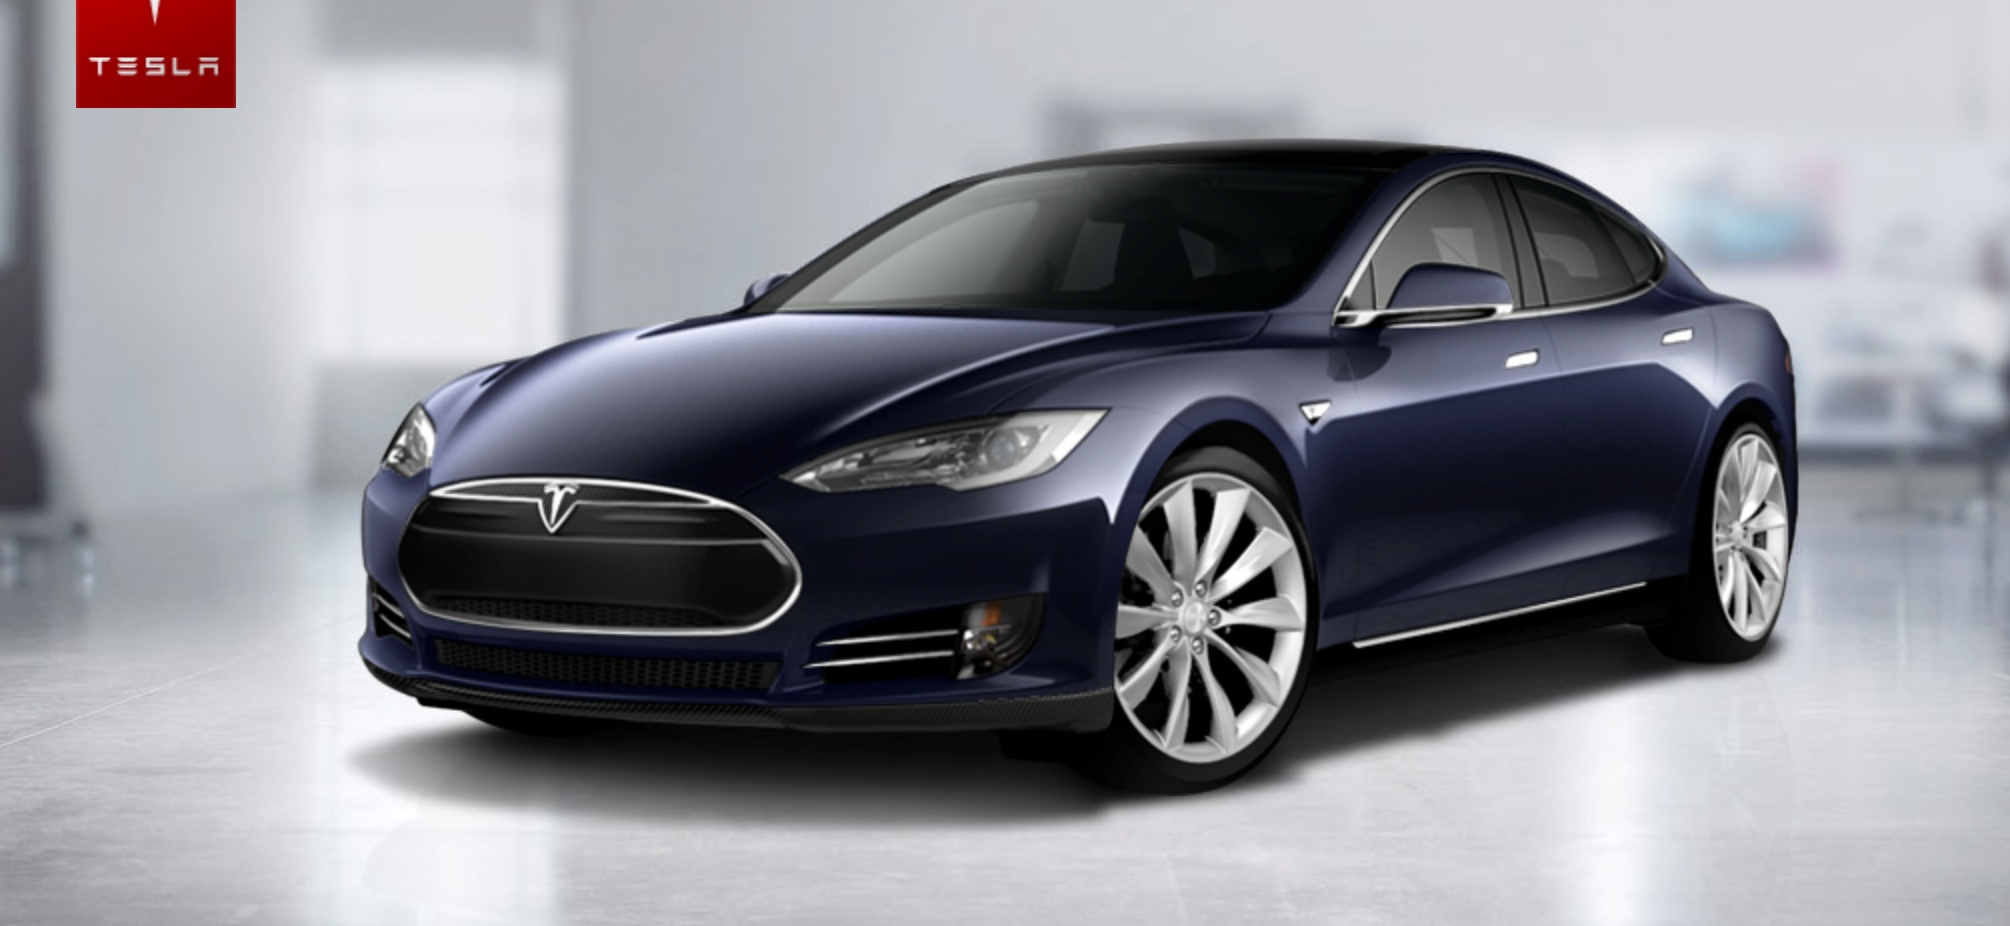 tesla motors nikola tesla 33 car hd wallpaper. Black Bedroom Furniture Sets. Home Design Ideas